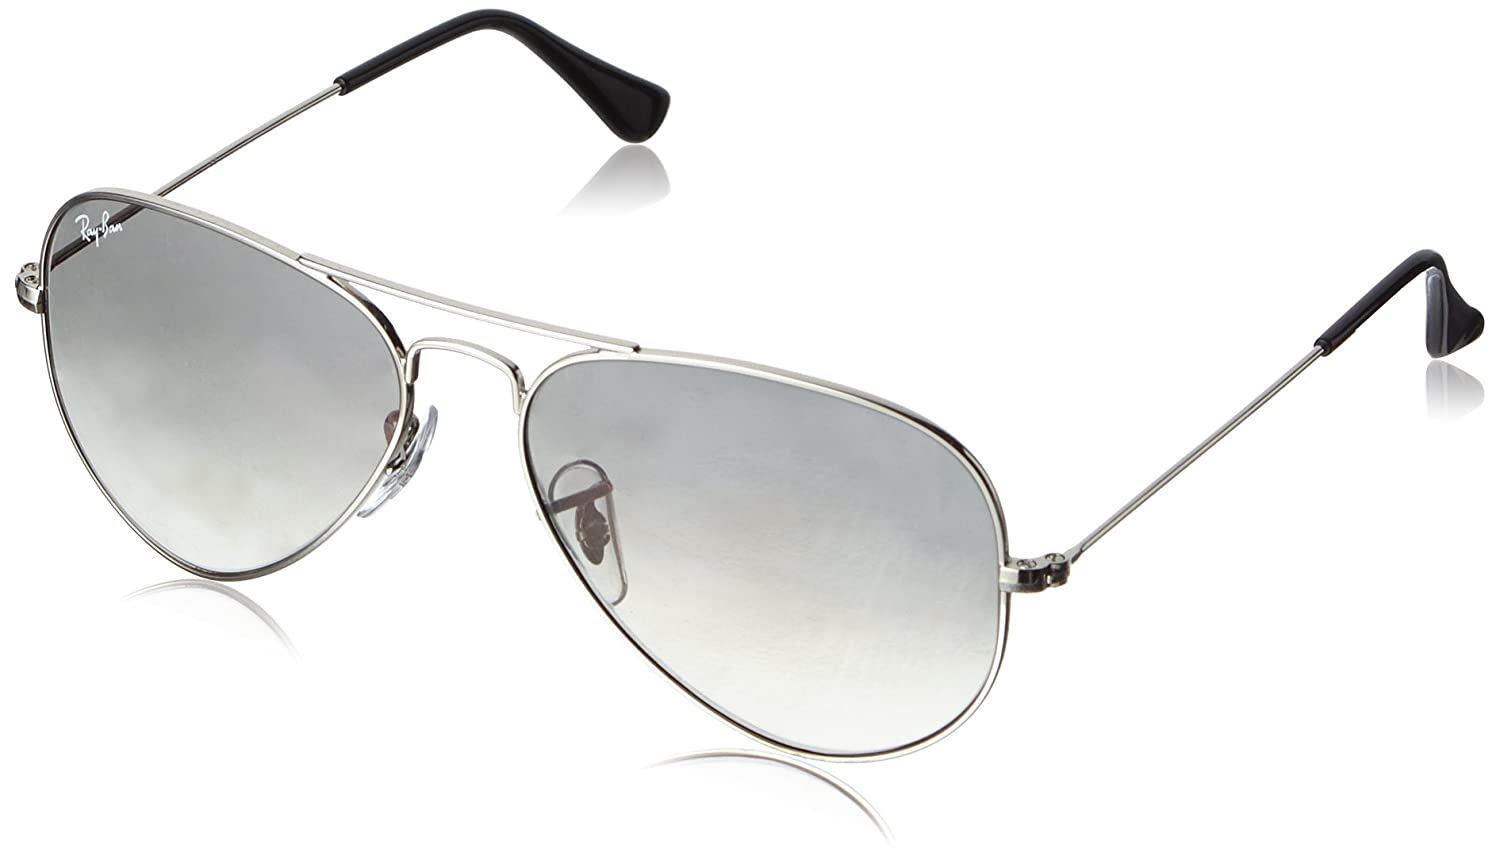 aviator ray ban rb3025  Ray-Ban Aviator RB3025 Large Metal Aviator Sunglasses 閾惰壊55姣背 ...